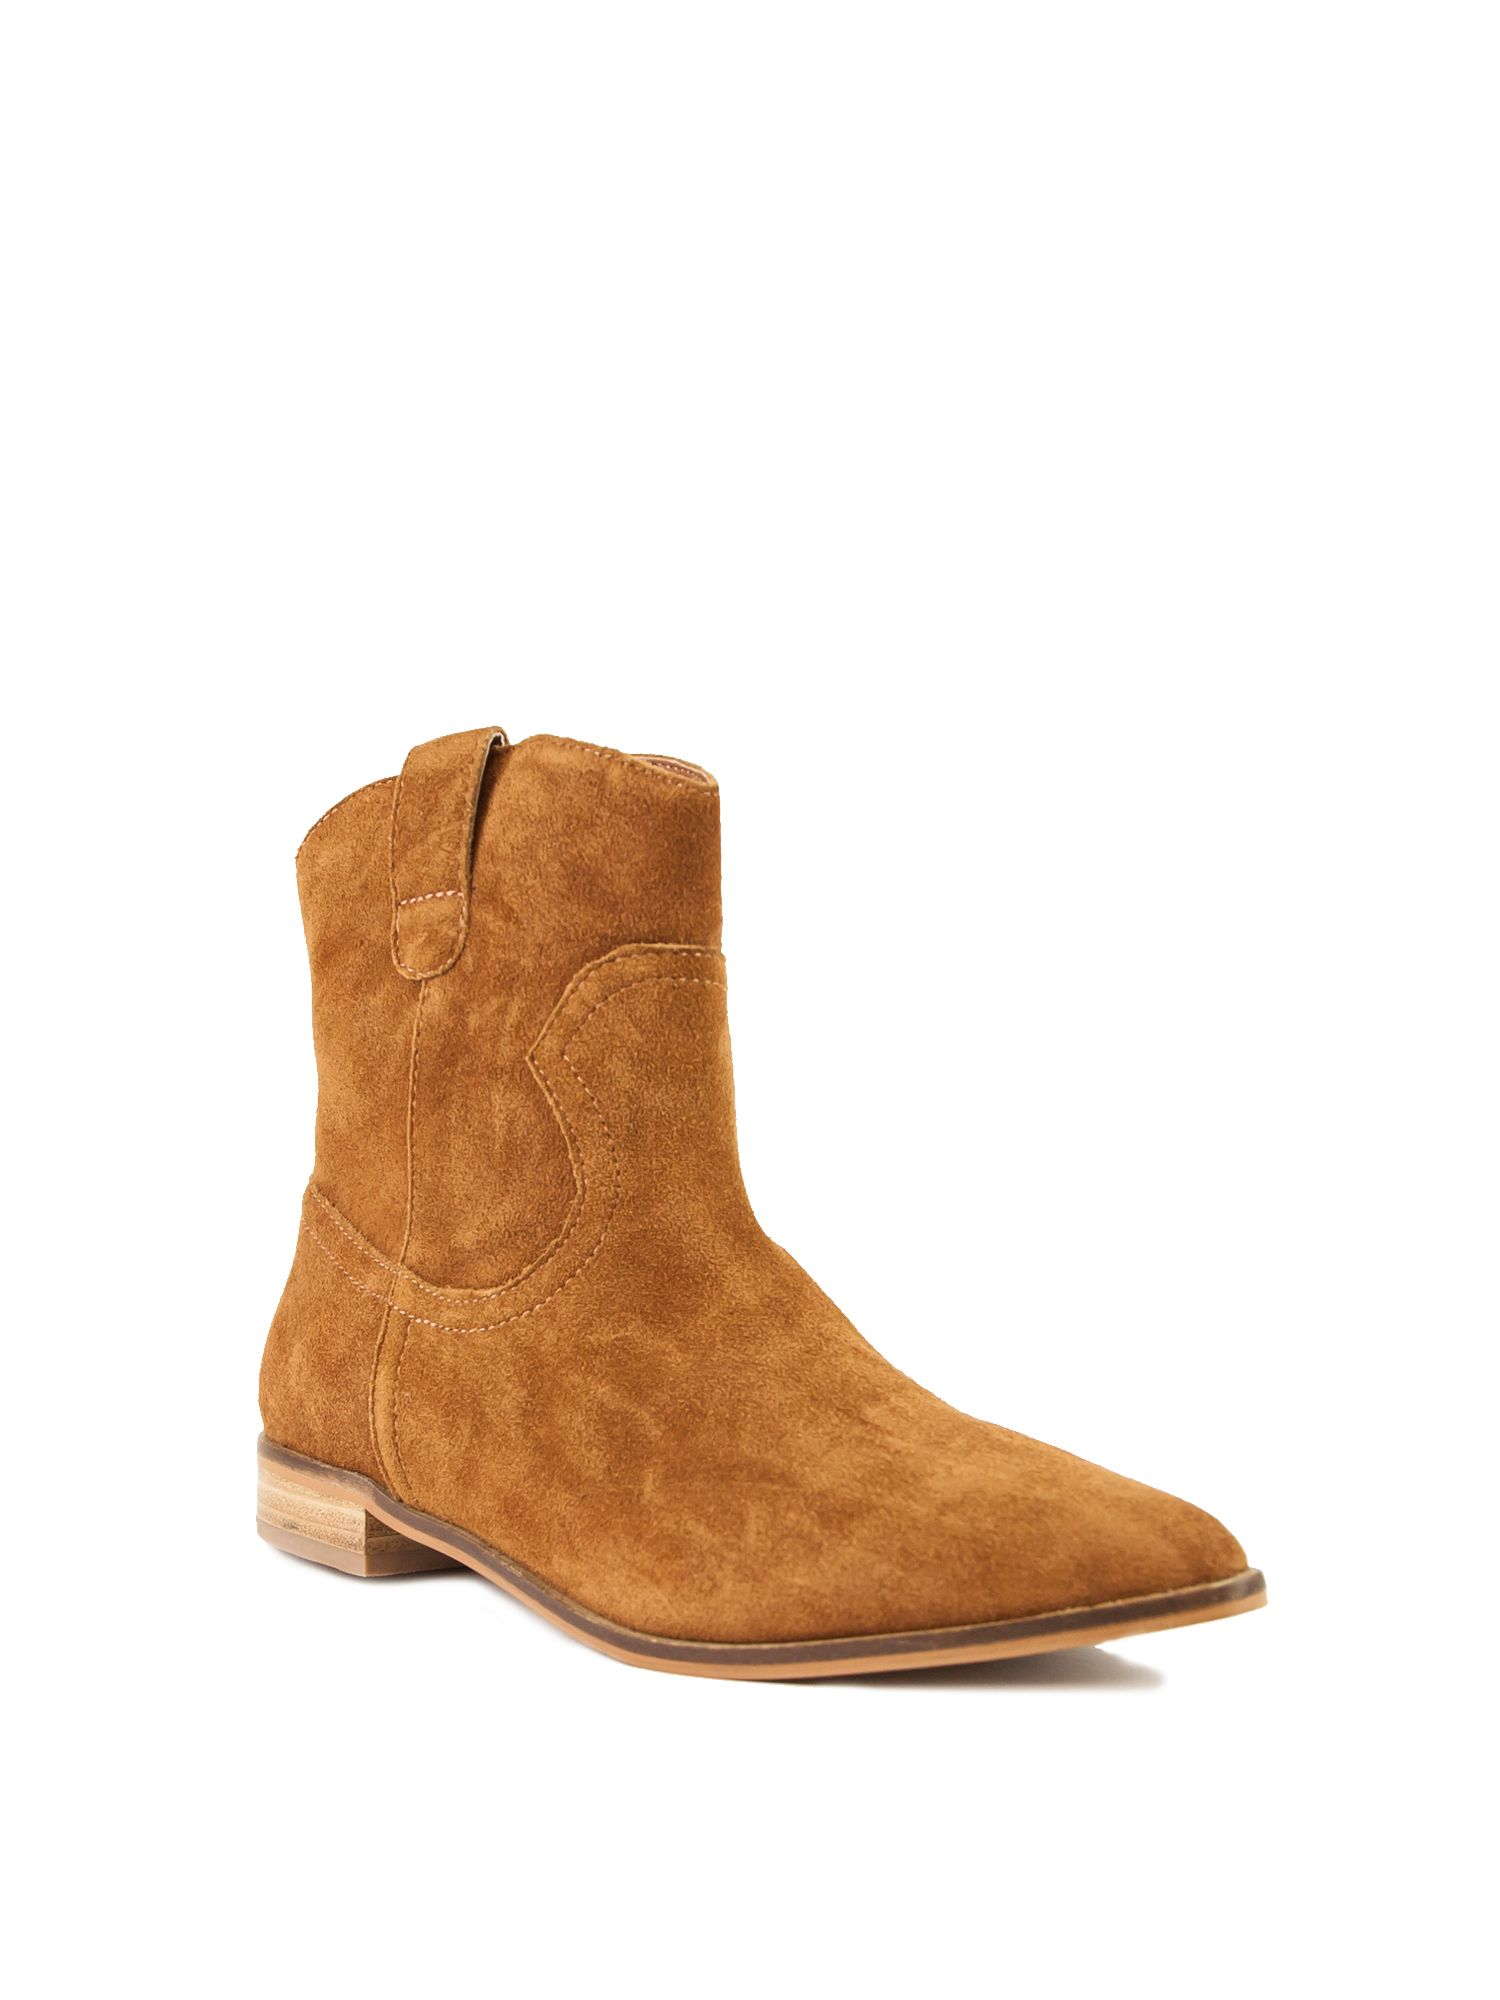 Shellys London Shellys London Bowroad casual western ankle boots, Brown